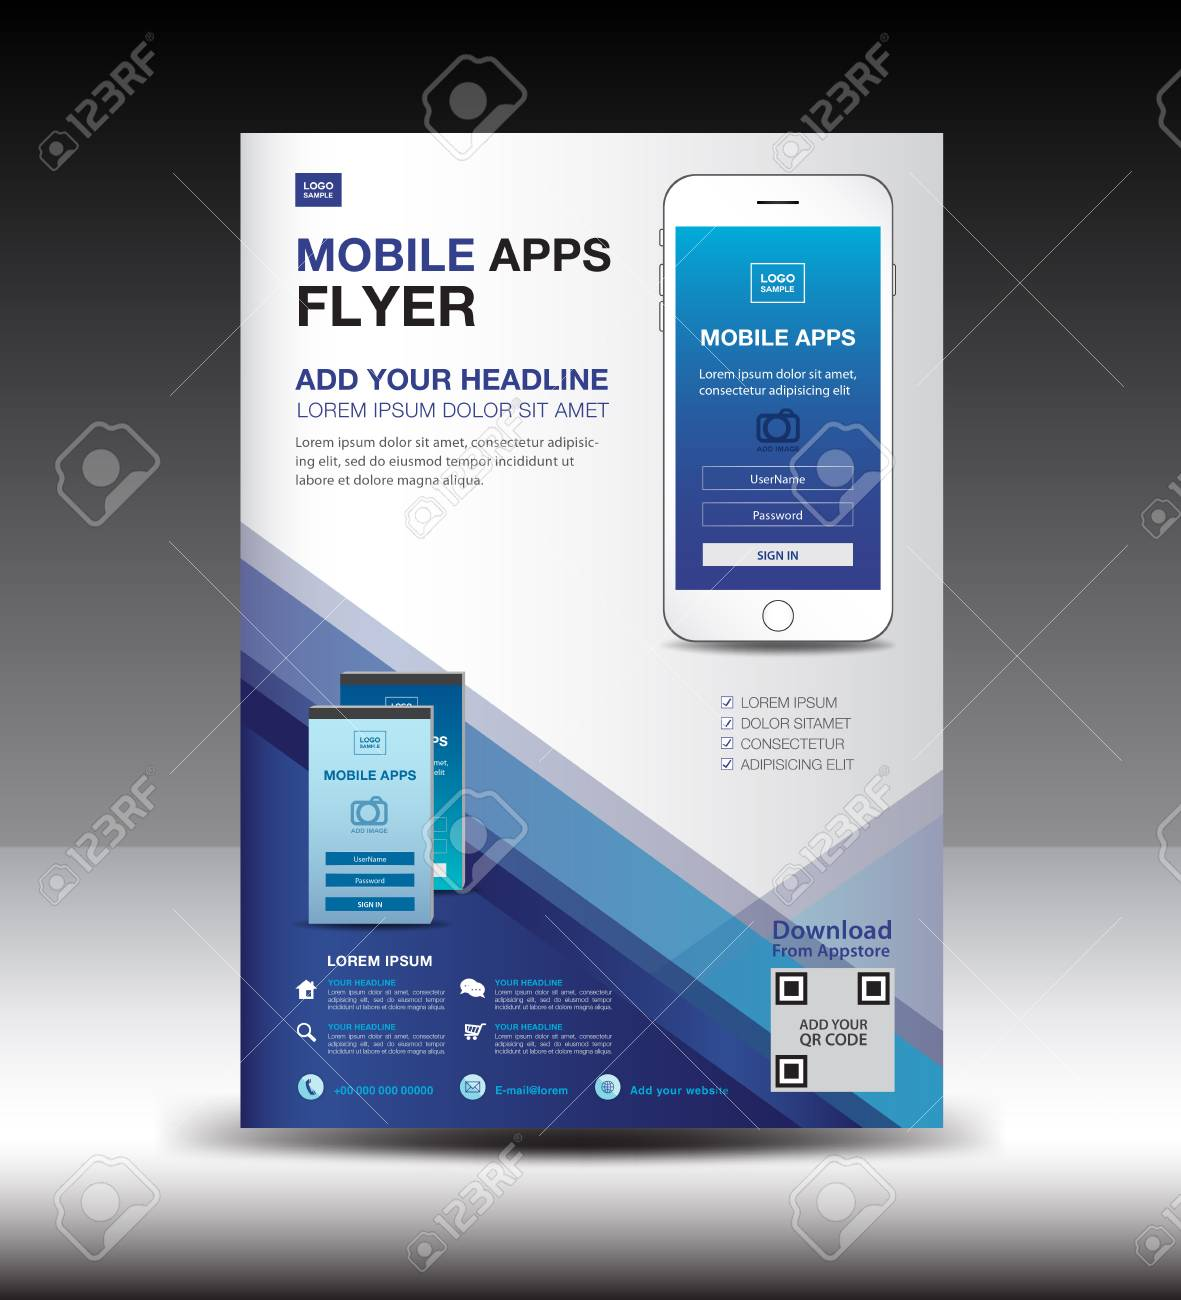 Mobile Apps Flyer Template Business Brochure Flyer Design Layout Royalty Free Cliparts Vectors And Stock Illustration Image 91217031